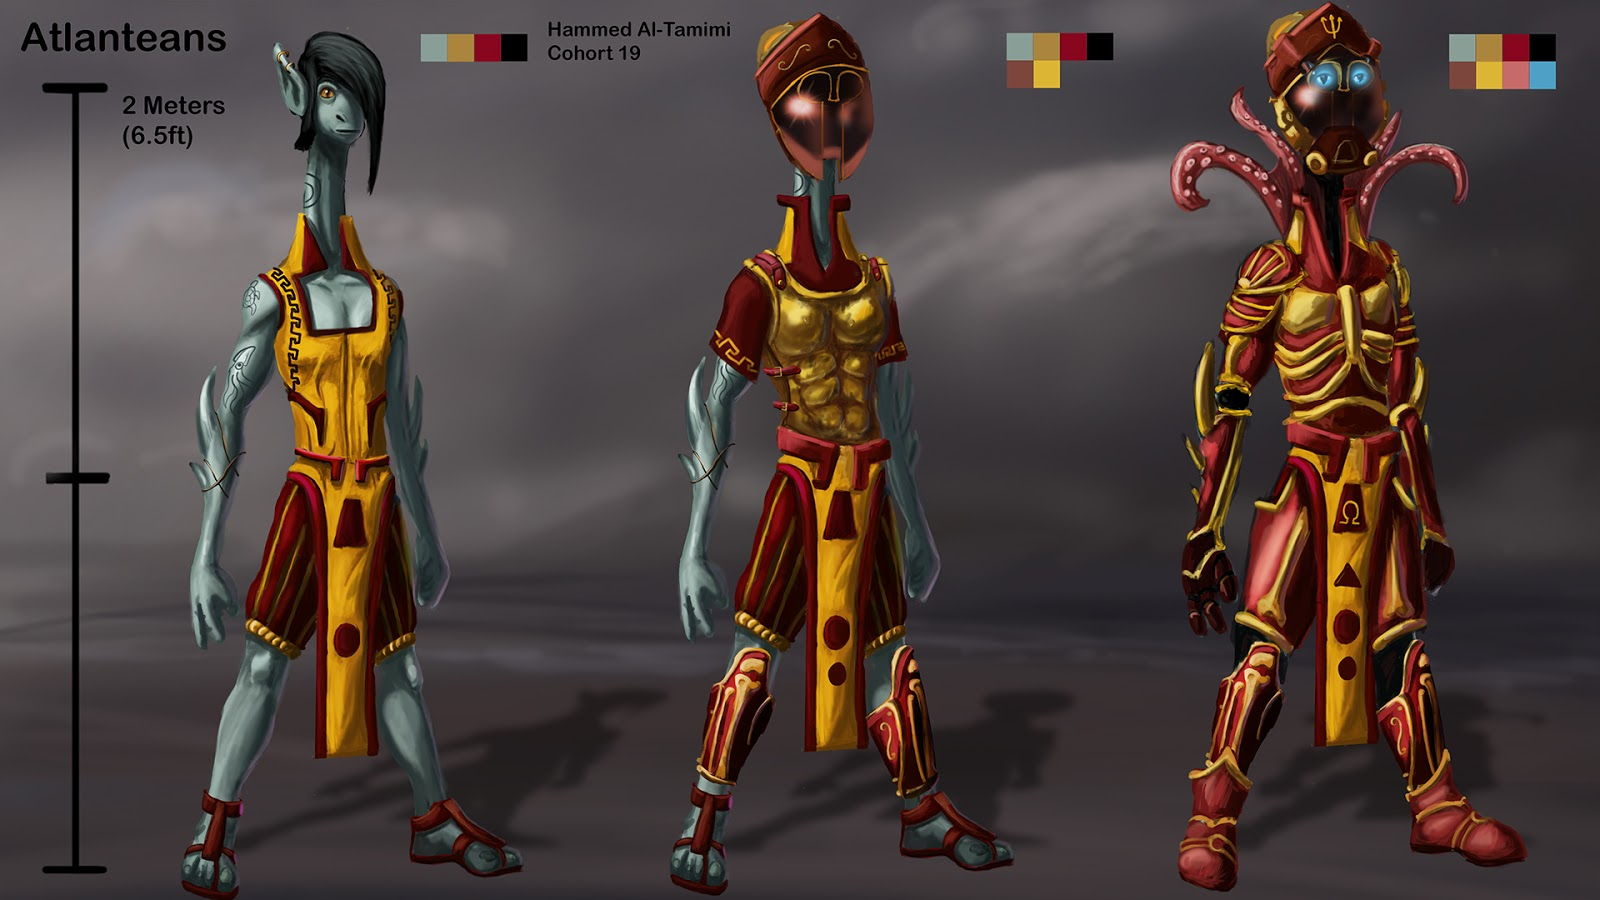 Hammed Al-Tamimi\'s Game Art and Design Blog: Armor sets